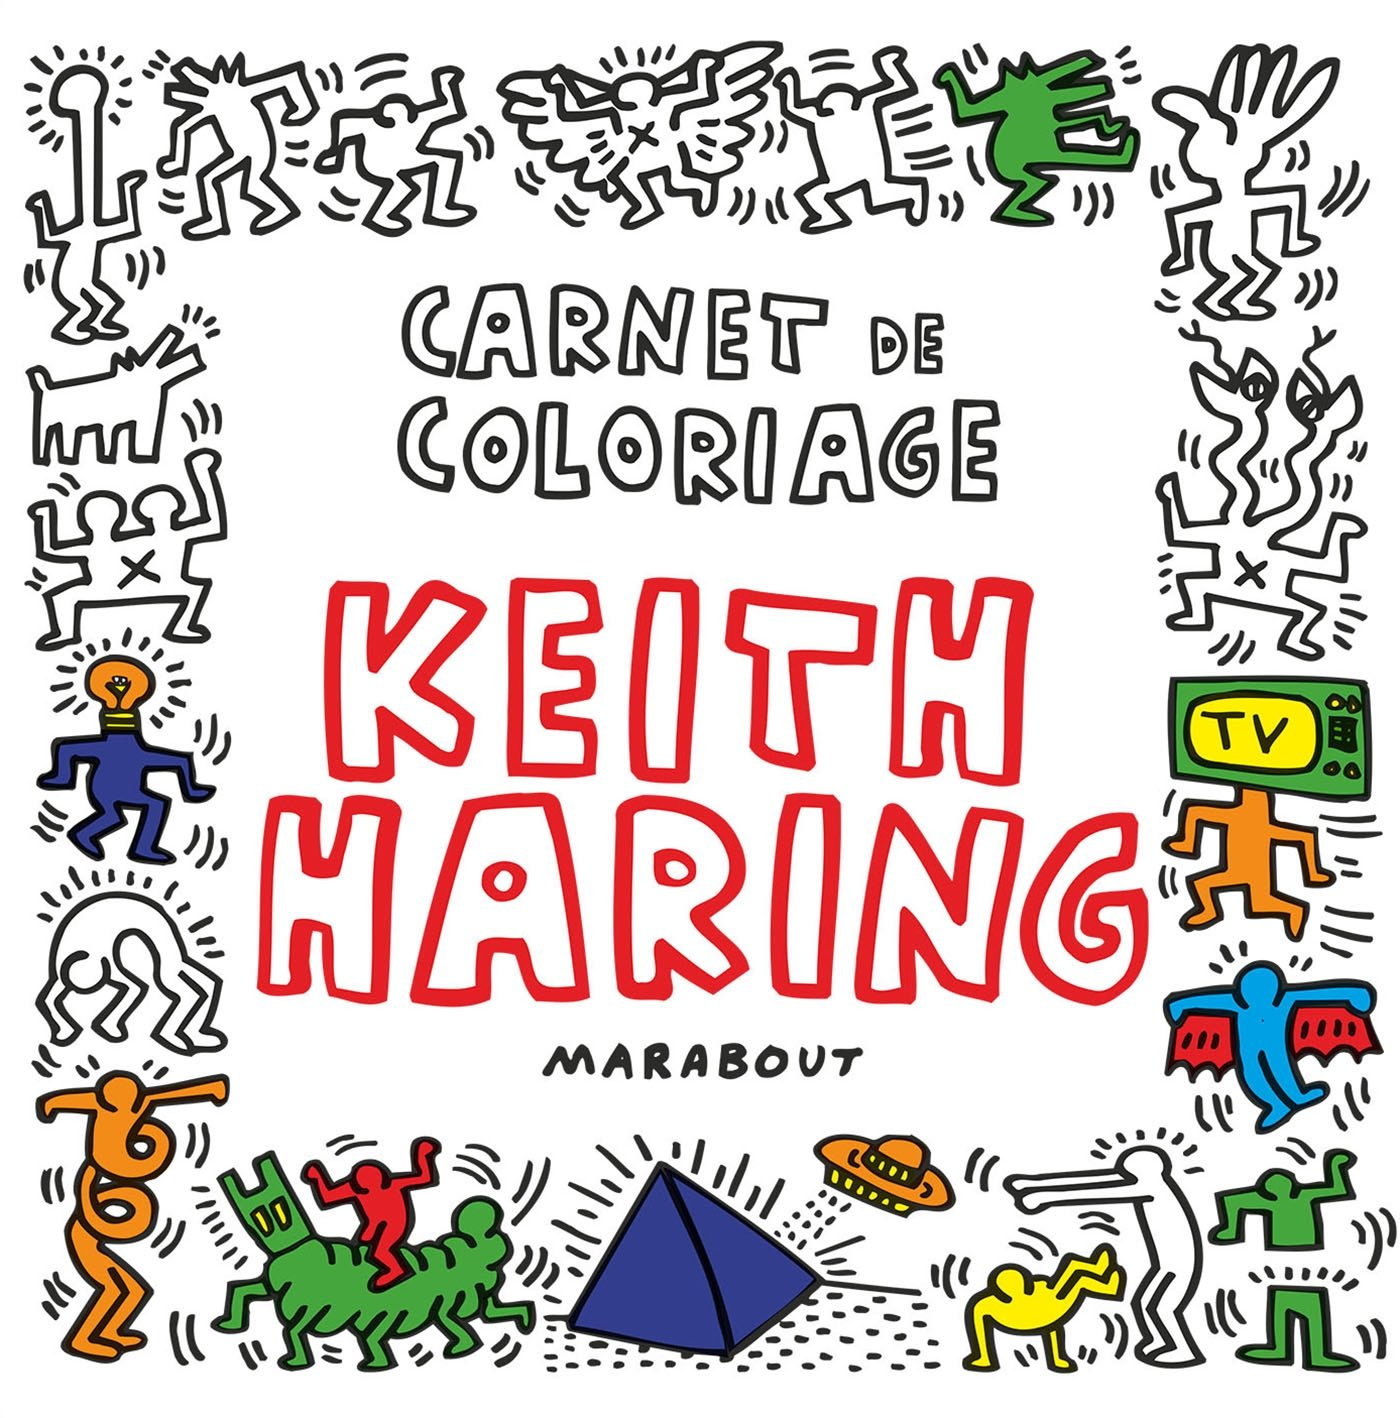 Coloriage Keith Haring.Carnet De Coloriage De Keith Haring 9782501093651 Amazon Com Books